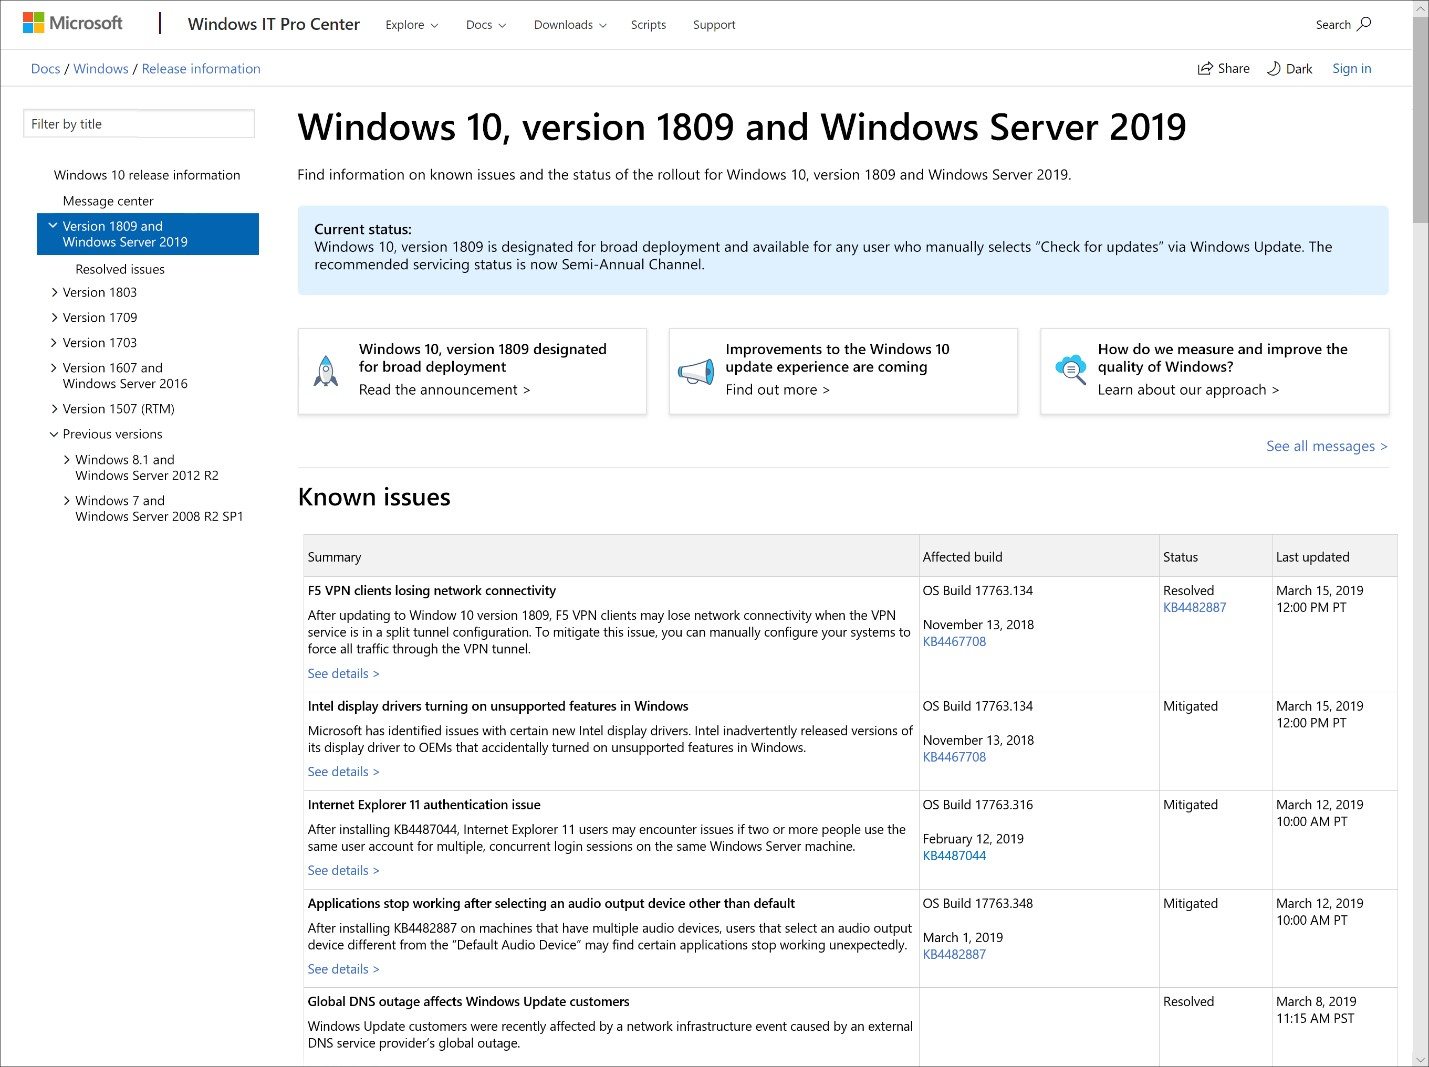 Topic: New update options for Win10 1903 explained @ AskWoody